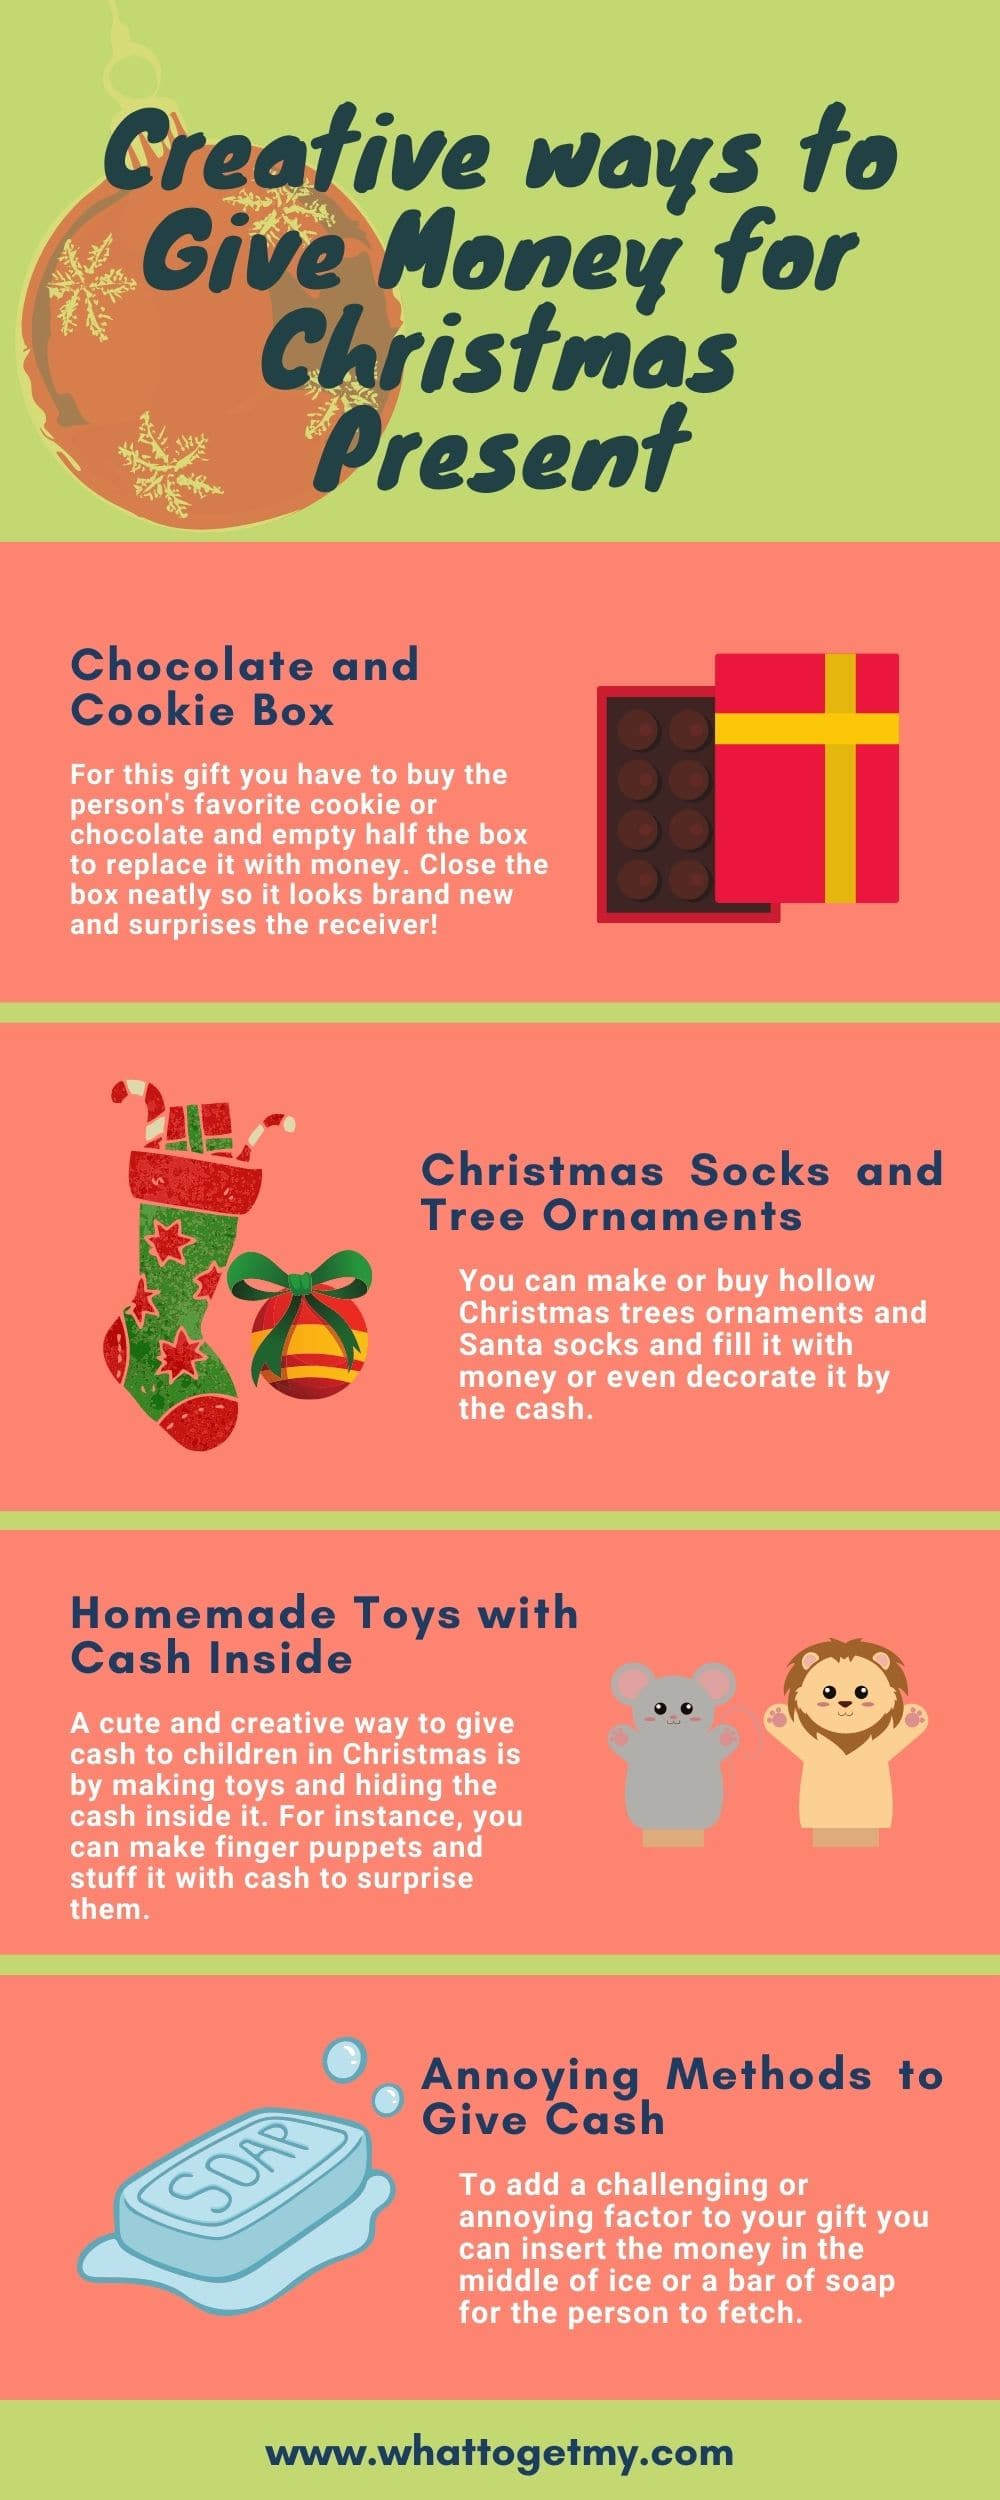 Creative ways to give money for christmas present